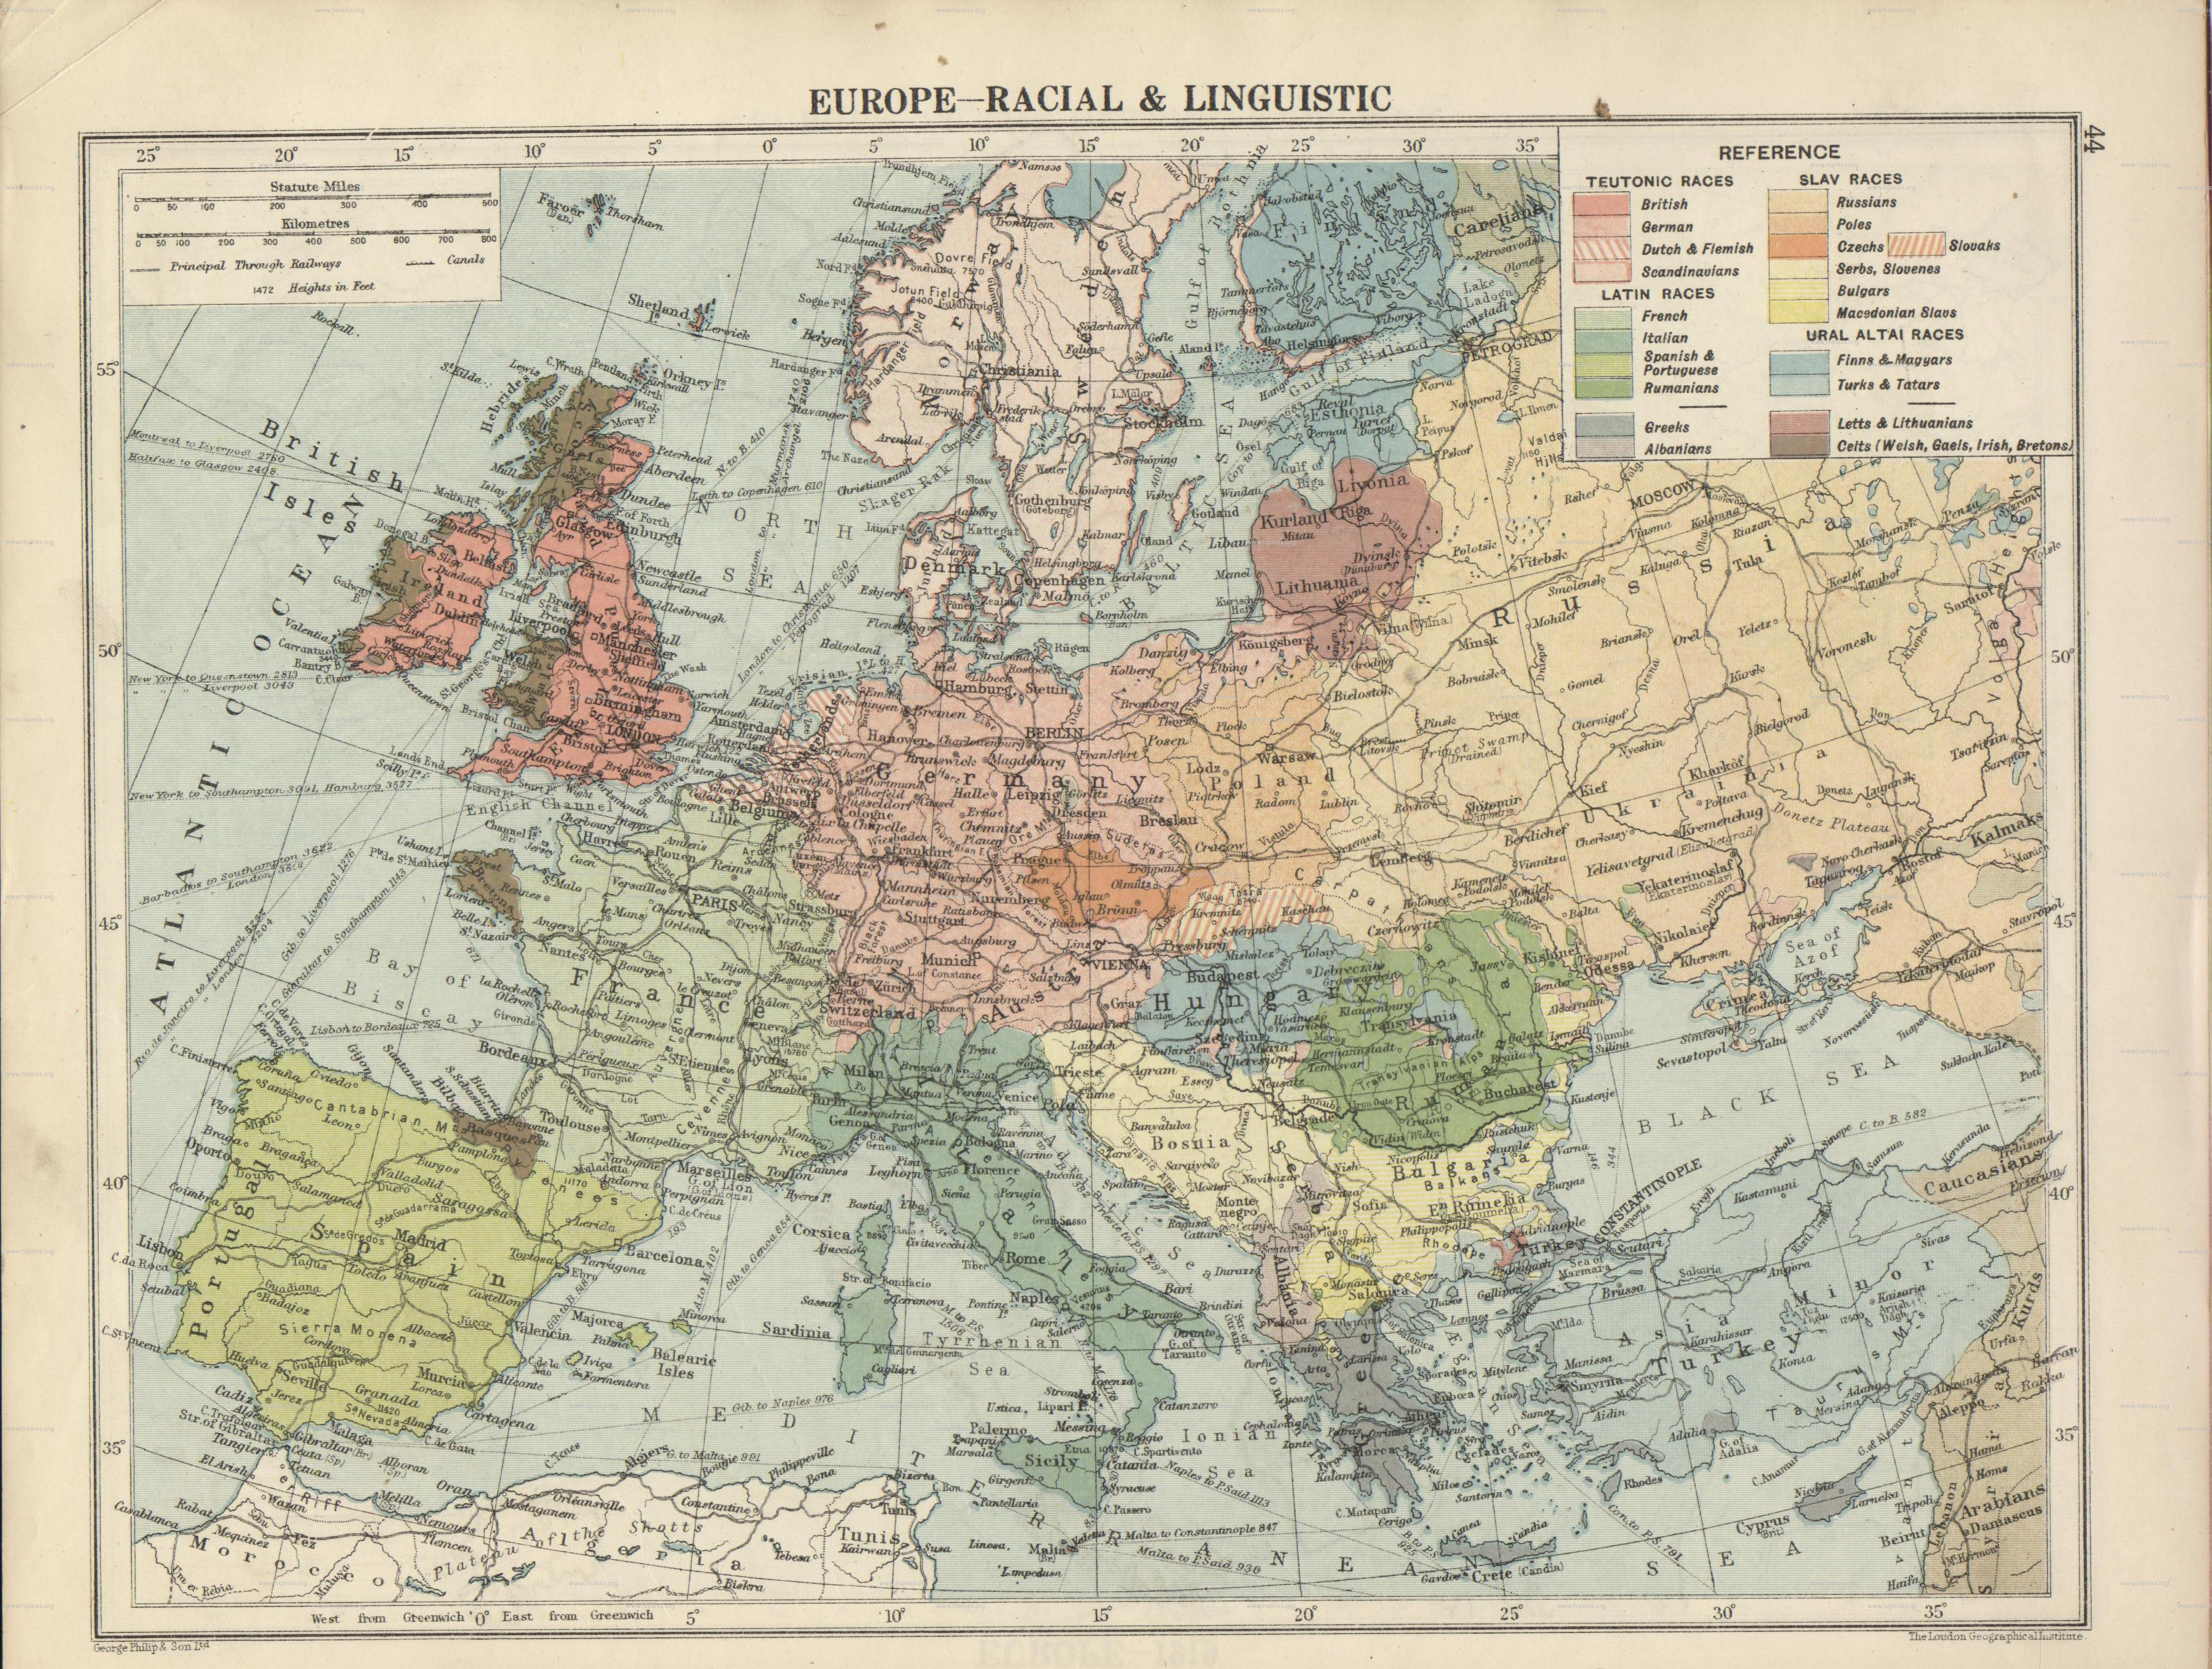 Macedonians noted on a racial and linguistic map of Europe  1920     Published